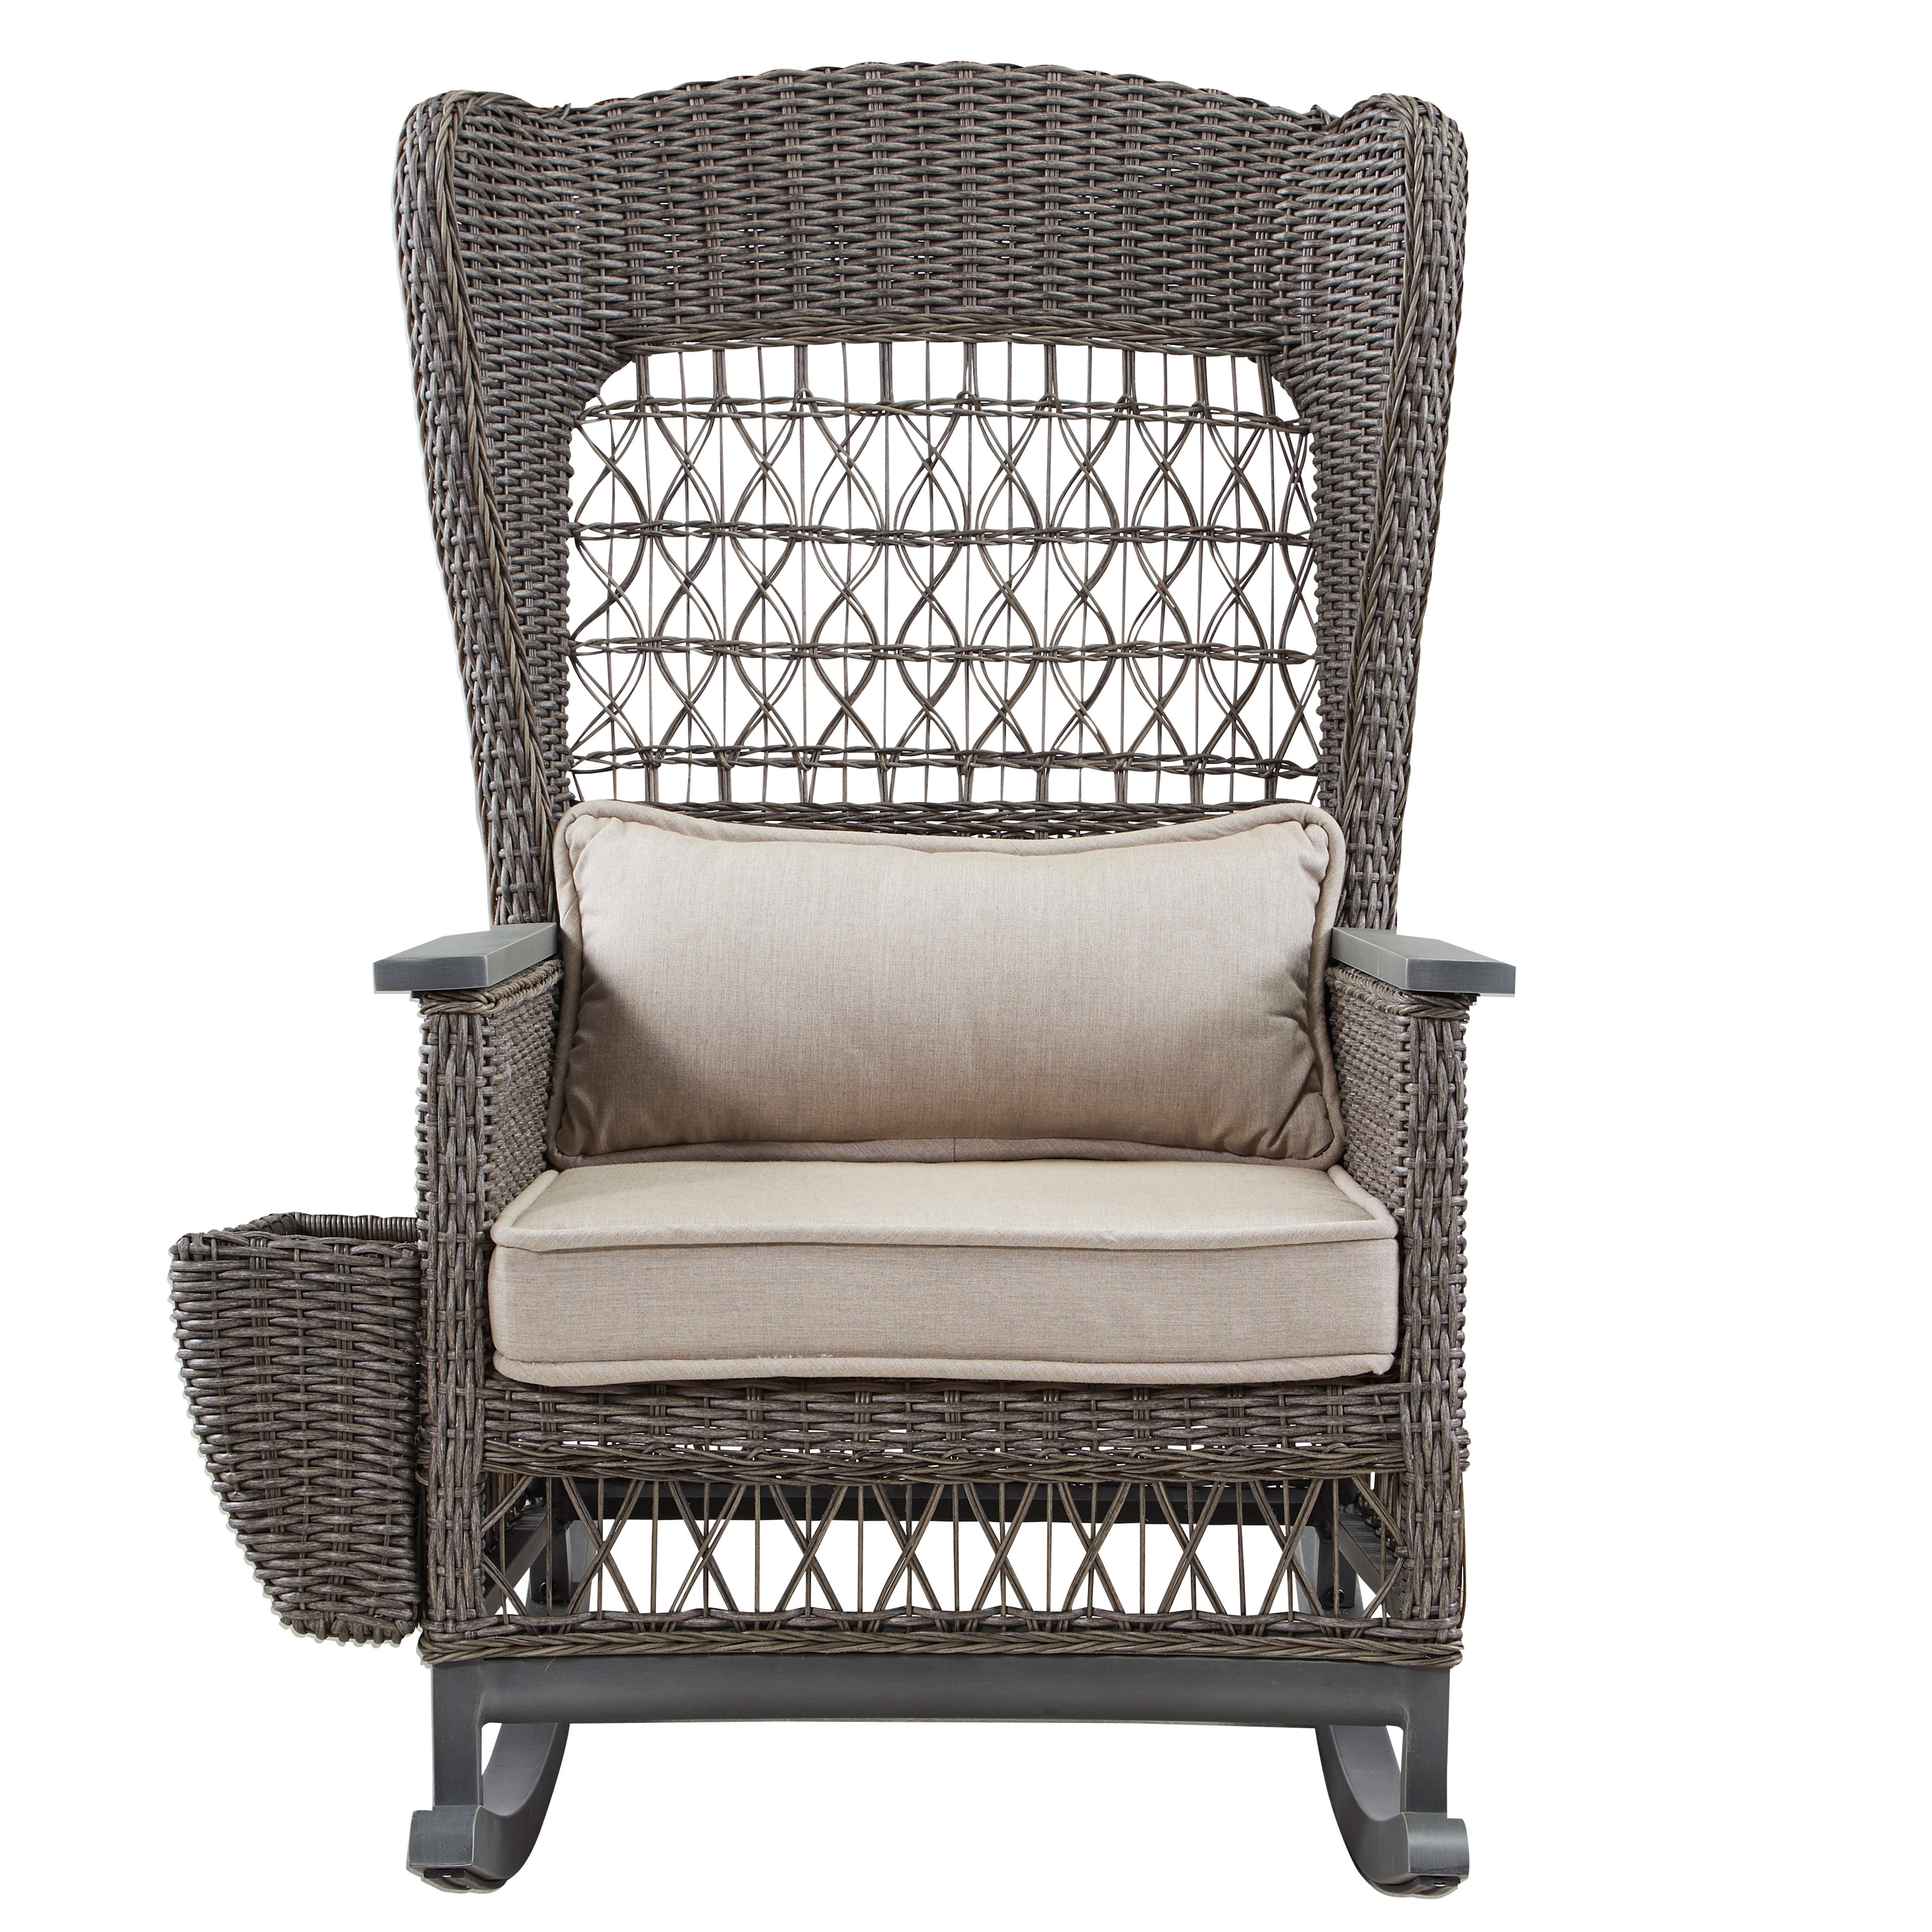 Well Known Rocking Chairs With Cushions Pertaining To Paula Deen Home Dogwood Rocking Chair With Cushions (View 15 of 15)